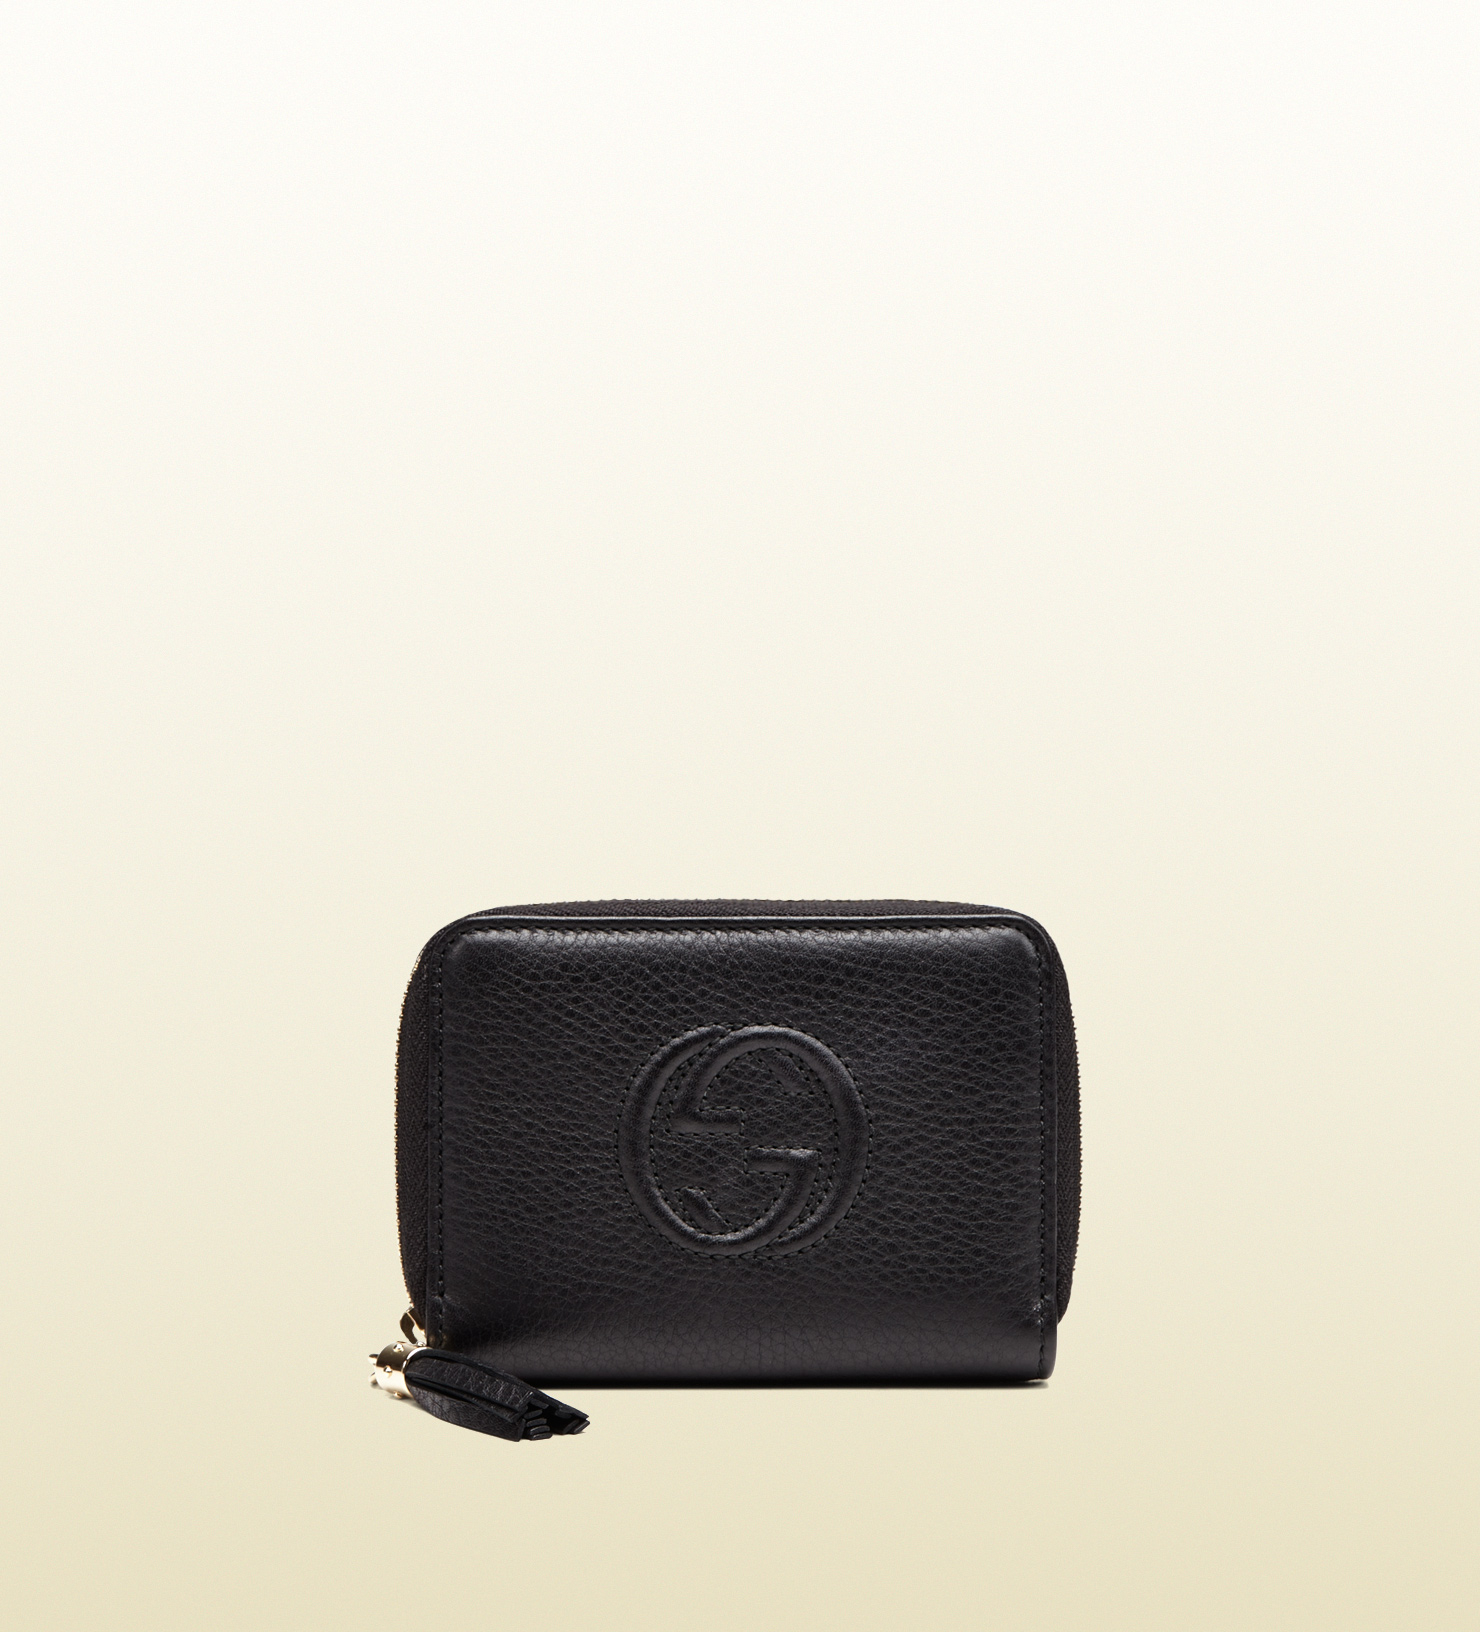 506cc28cfbdd48 Gucci Soho Wallet In Black | Stanford Center for Opportunity Policy ...